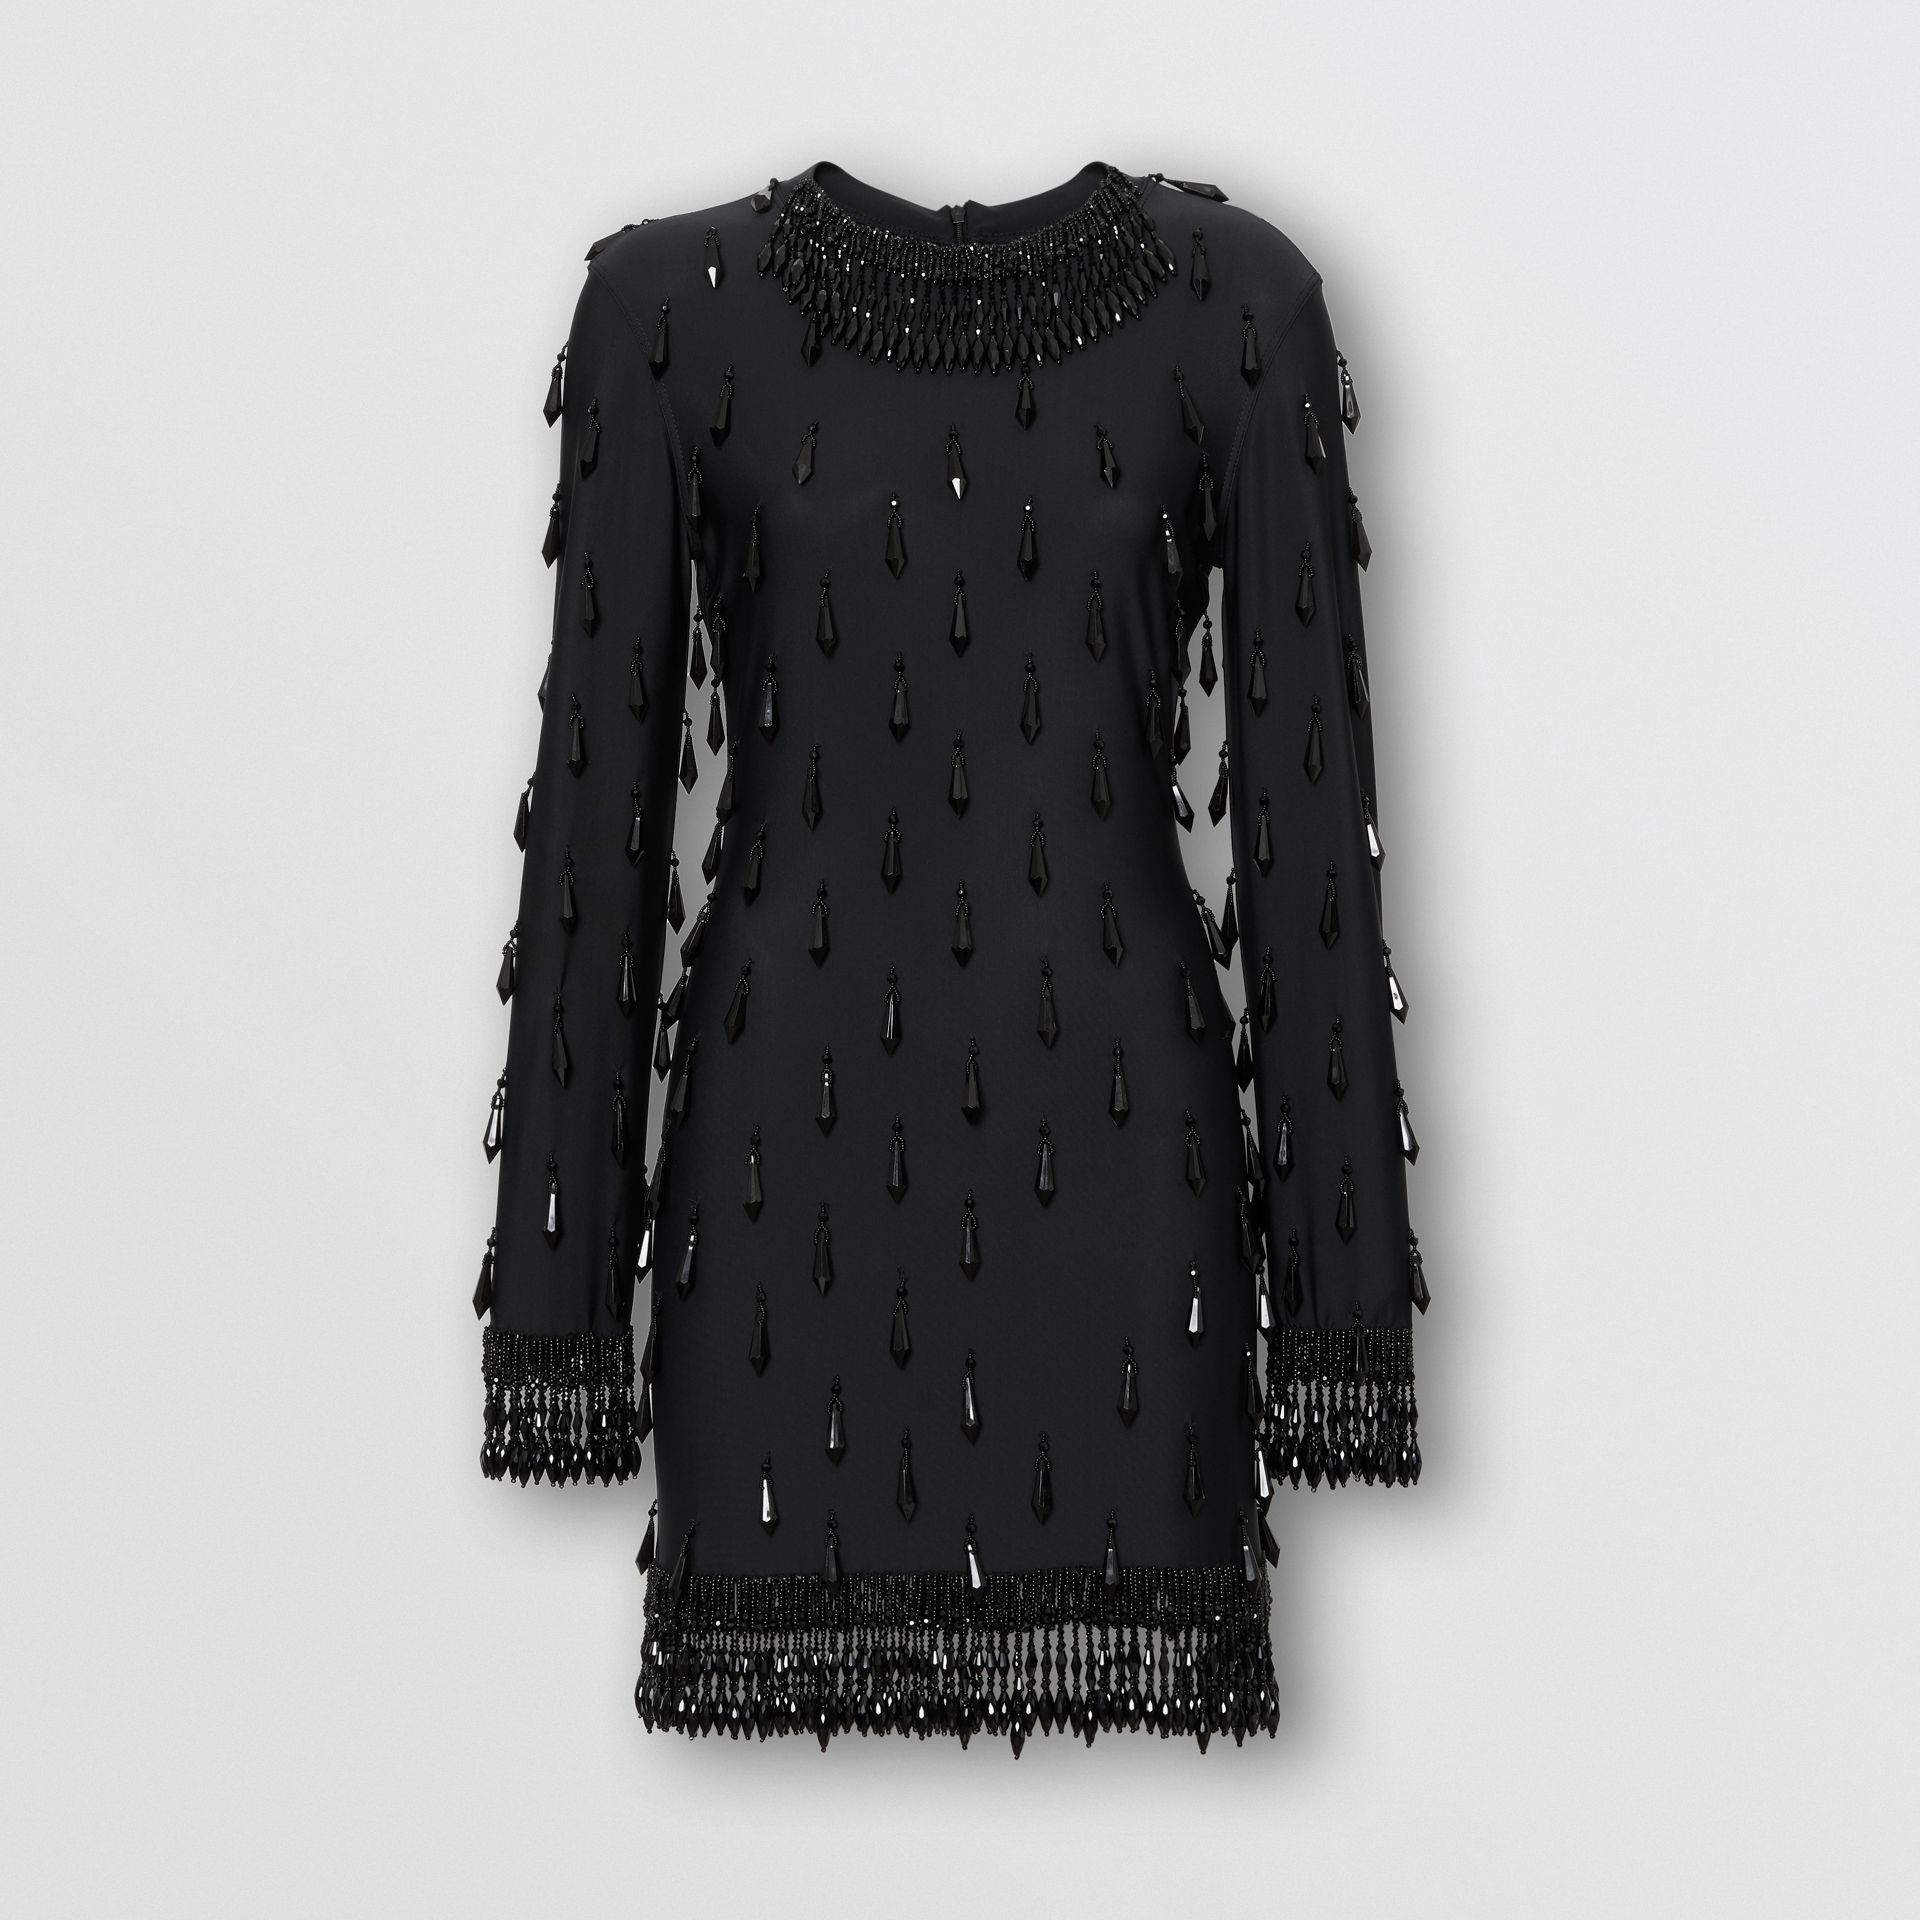 Long-sleeve Embellished Mini Dress in Black - Women | Burberry - gallery image 3